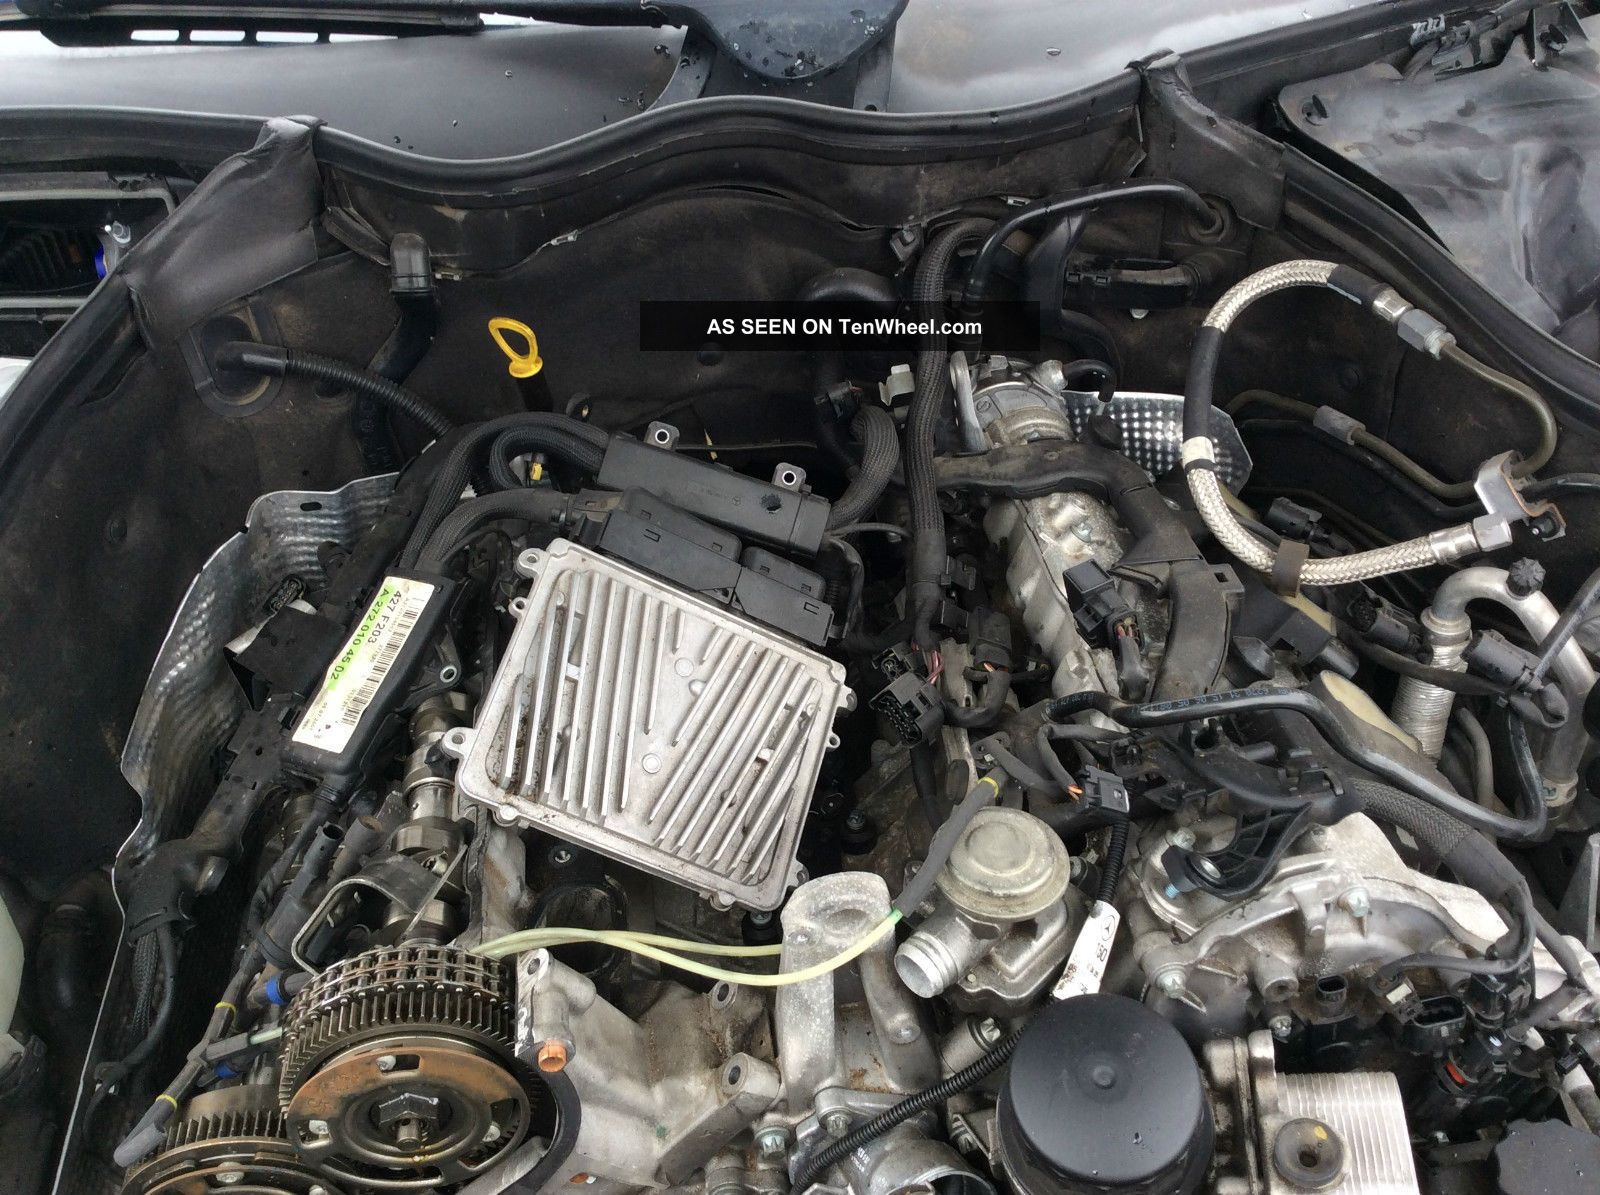 2006 c230 mercedes benz sport rwd with v6 engine for Mercedes benz c230 engine